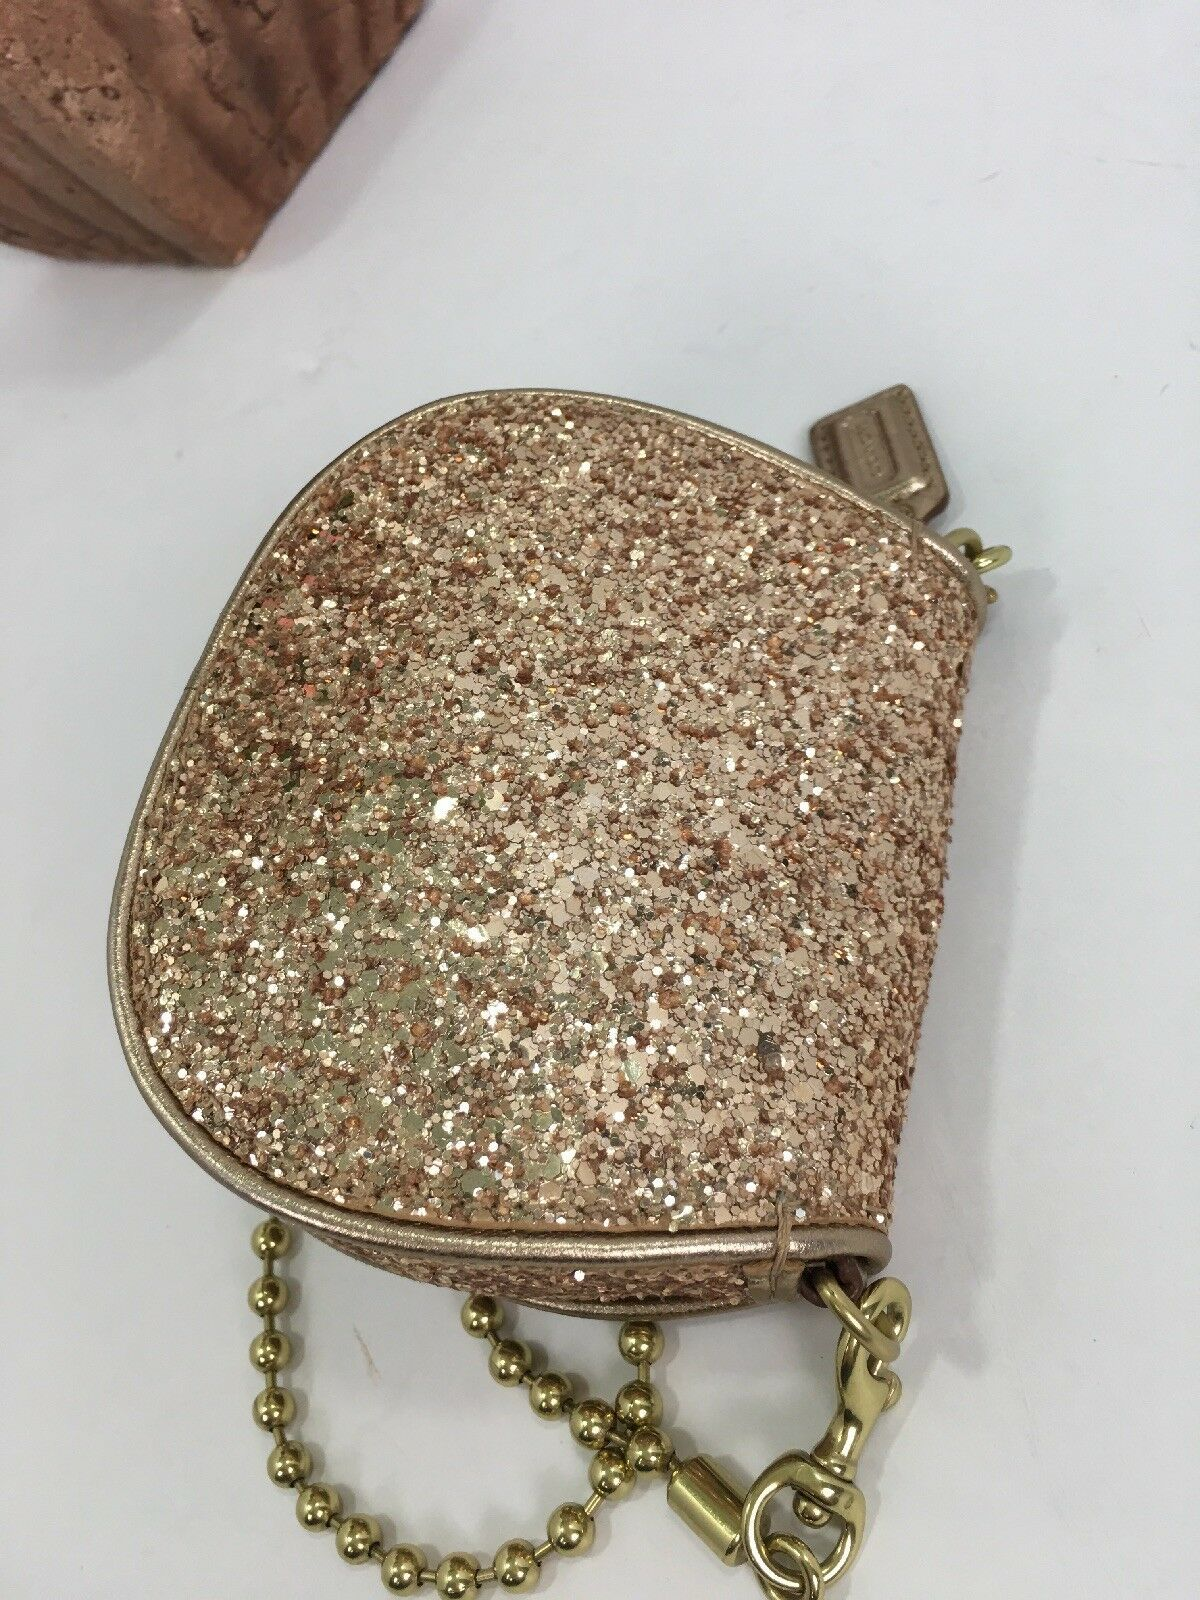 Coach Bag Evening Poppy Gold Sequin Crossbody Leather Chain 43292 Gold B2E image 4